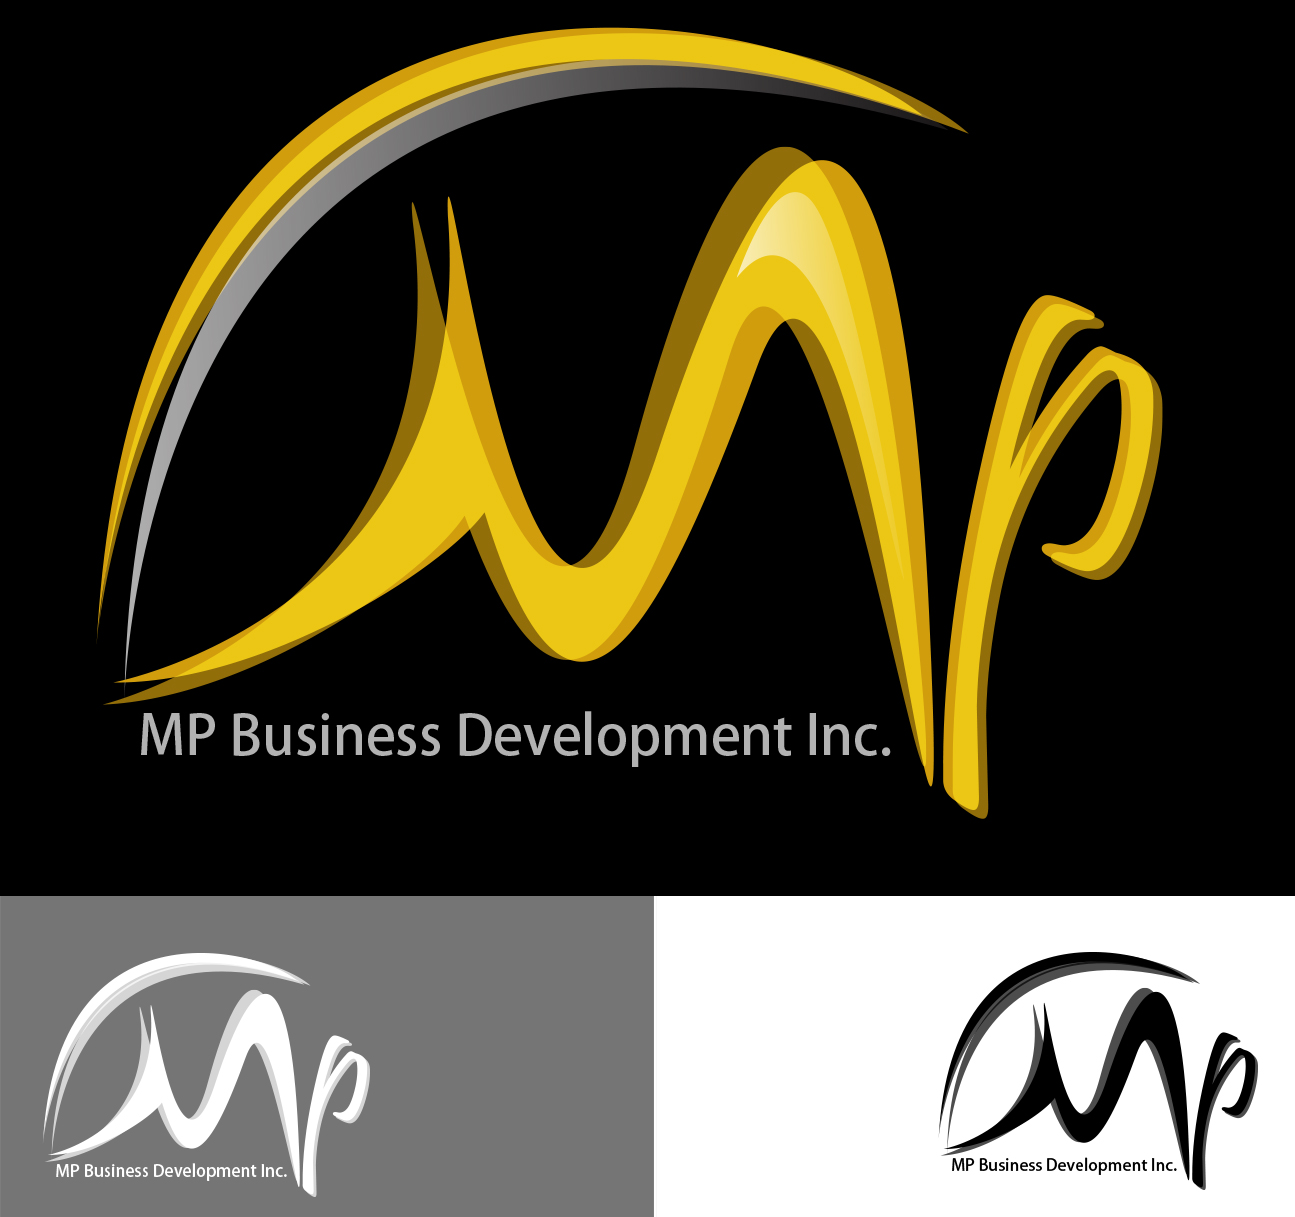 Logo Design by Leonard Anthony Alloso - Entry No. 204 in the Logo Design Contest MP Business Development Inc. Logo Design.